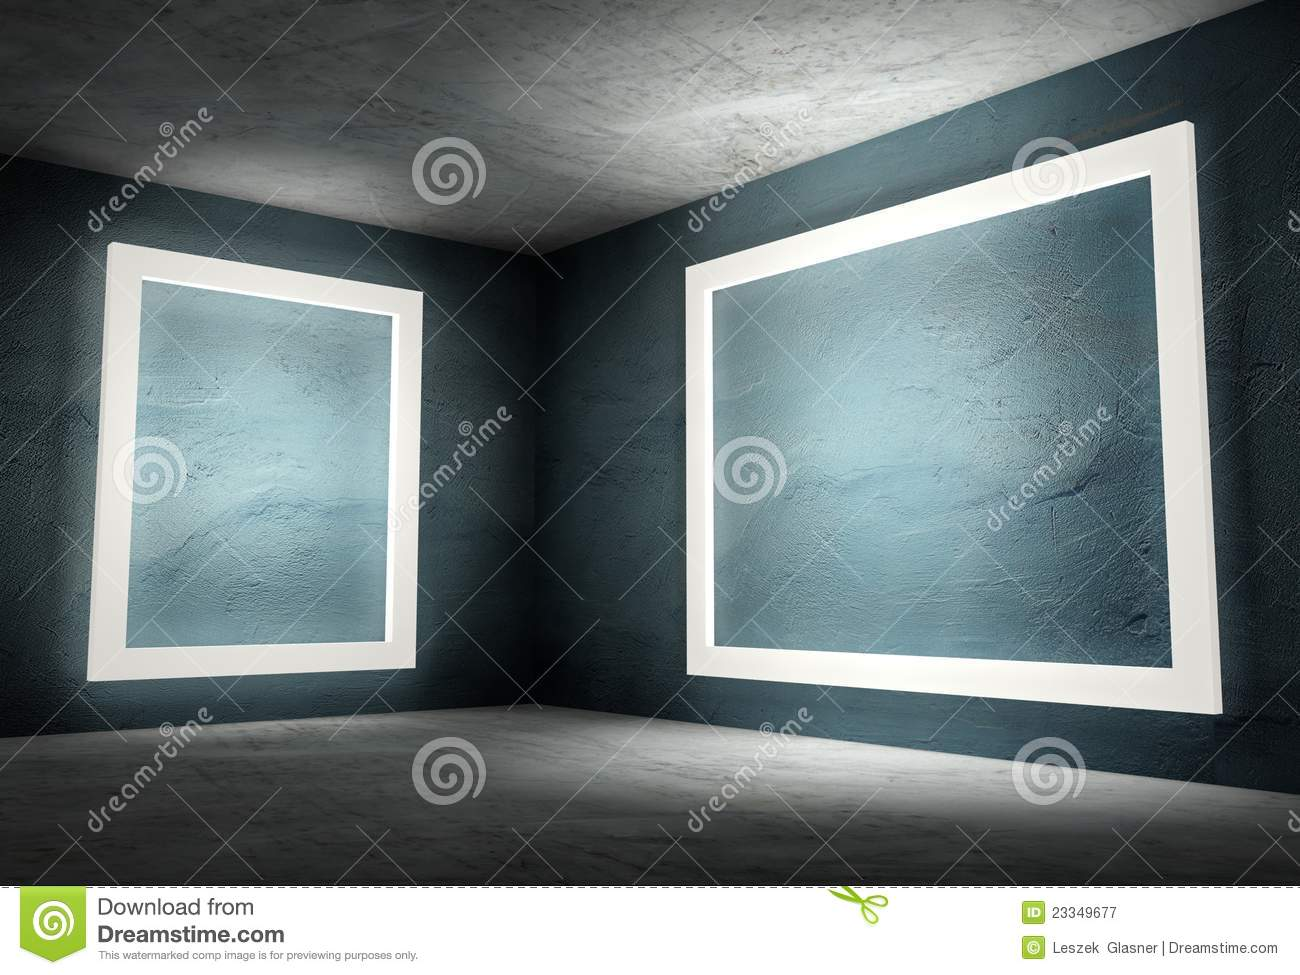 3d Empty Frames In Interior Stock Images - Image: 24119044